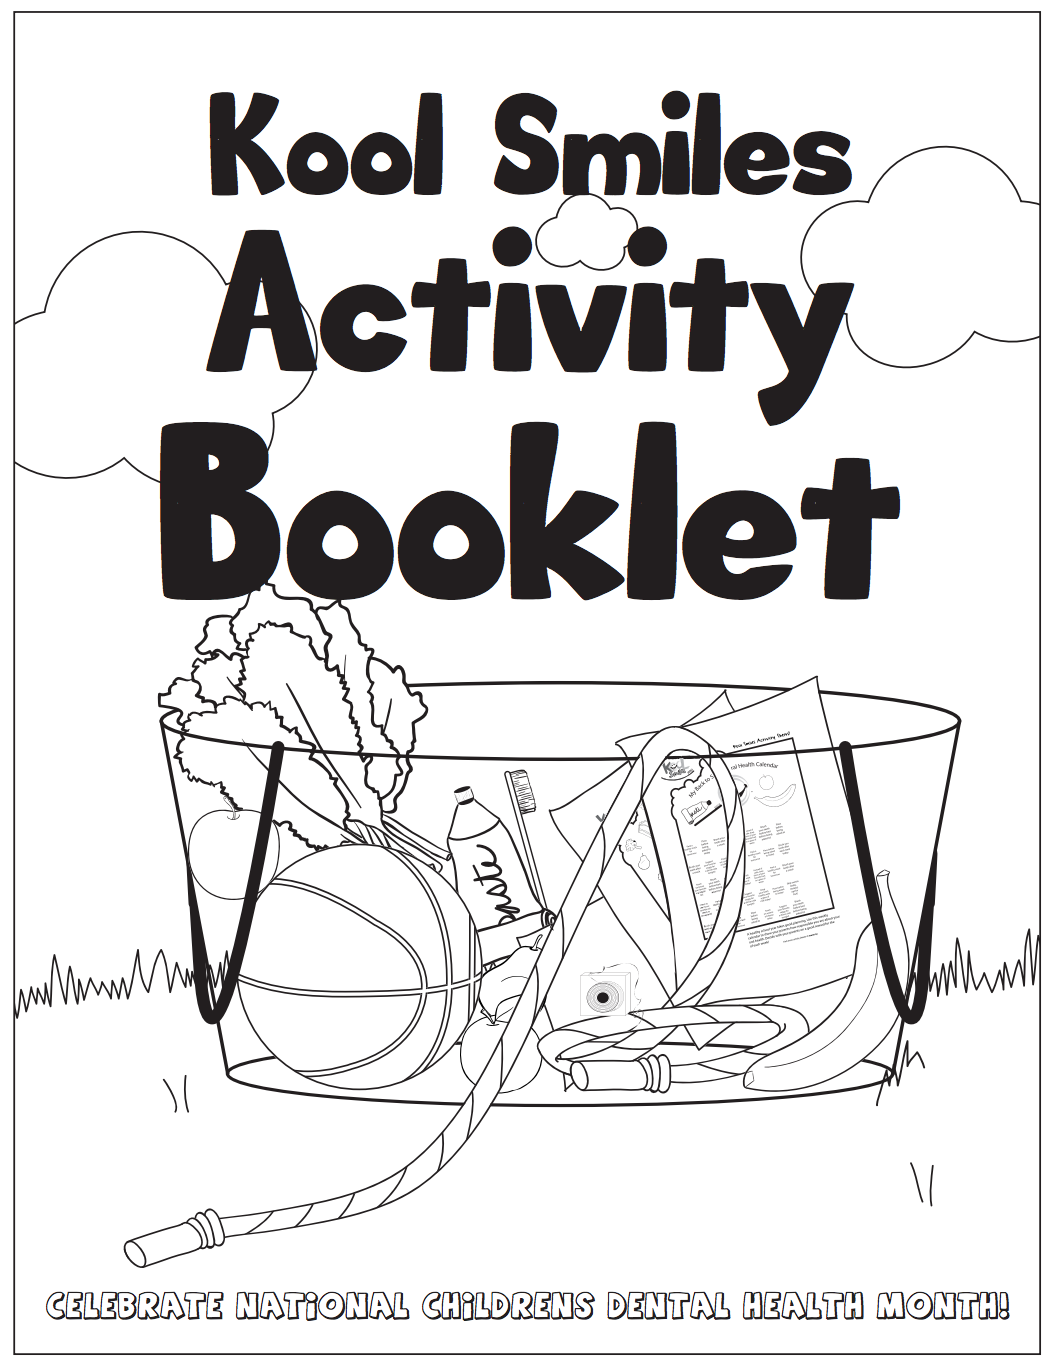 Make Learning About Dental Hygiene Fun With Our Activity Sheets